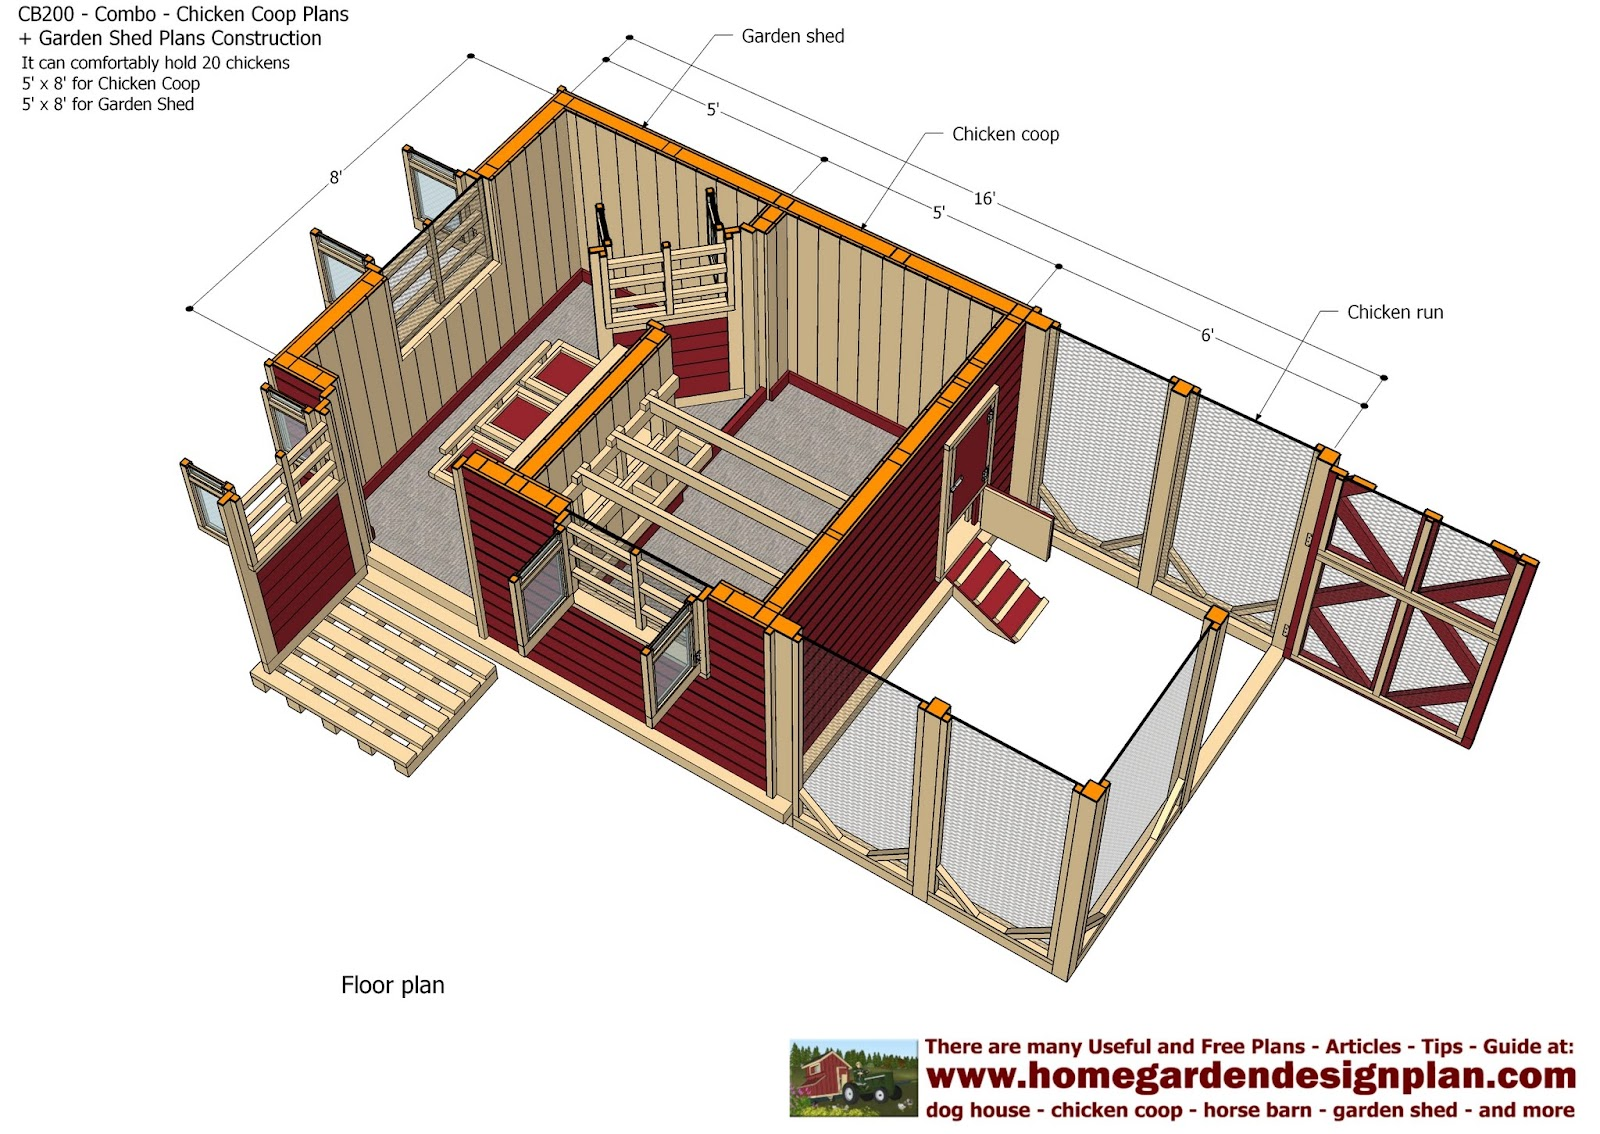 Home garden plans cb200 combo plans chicken coop for House and barn combination plans